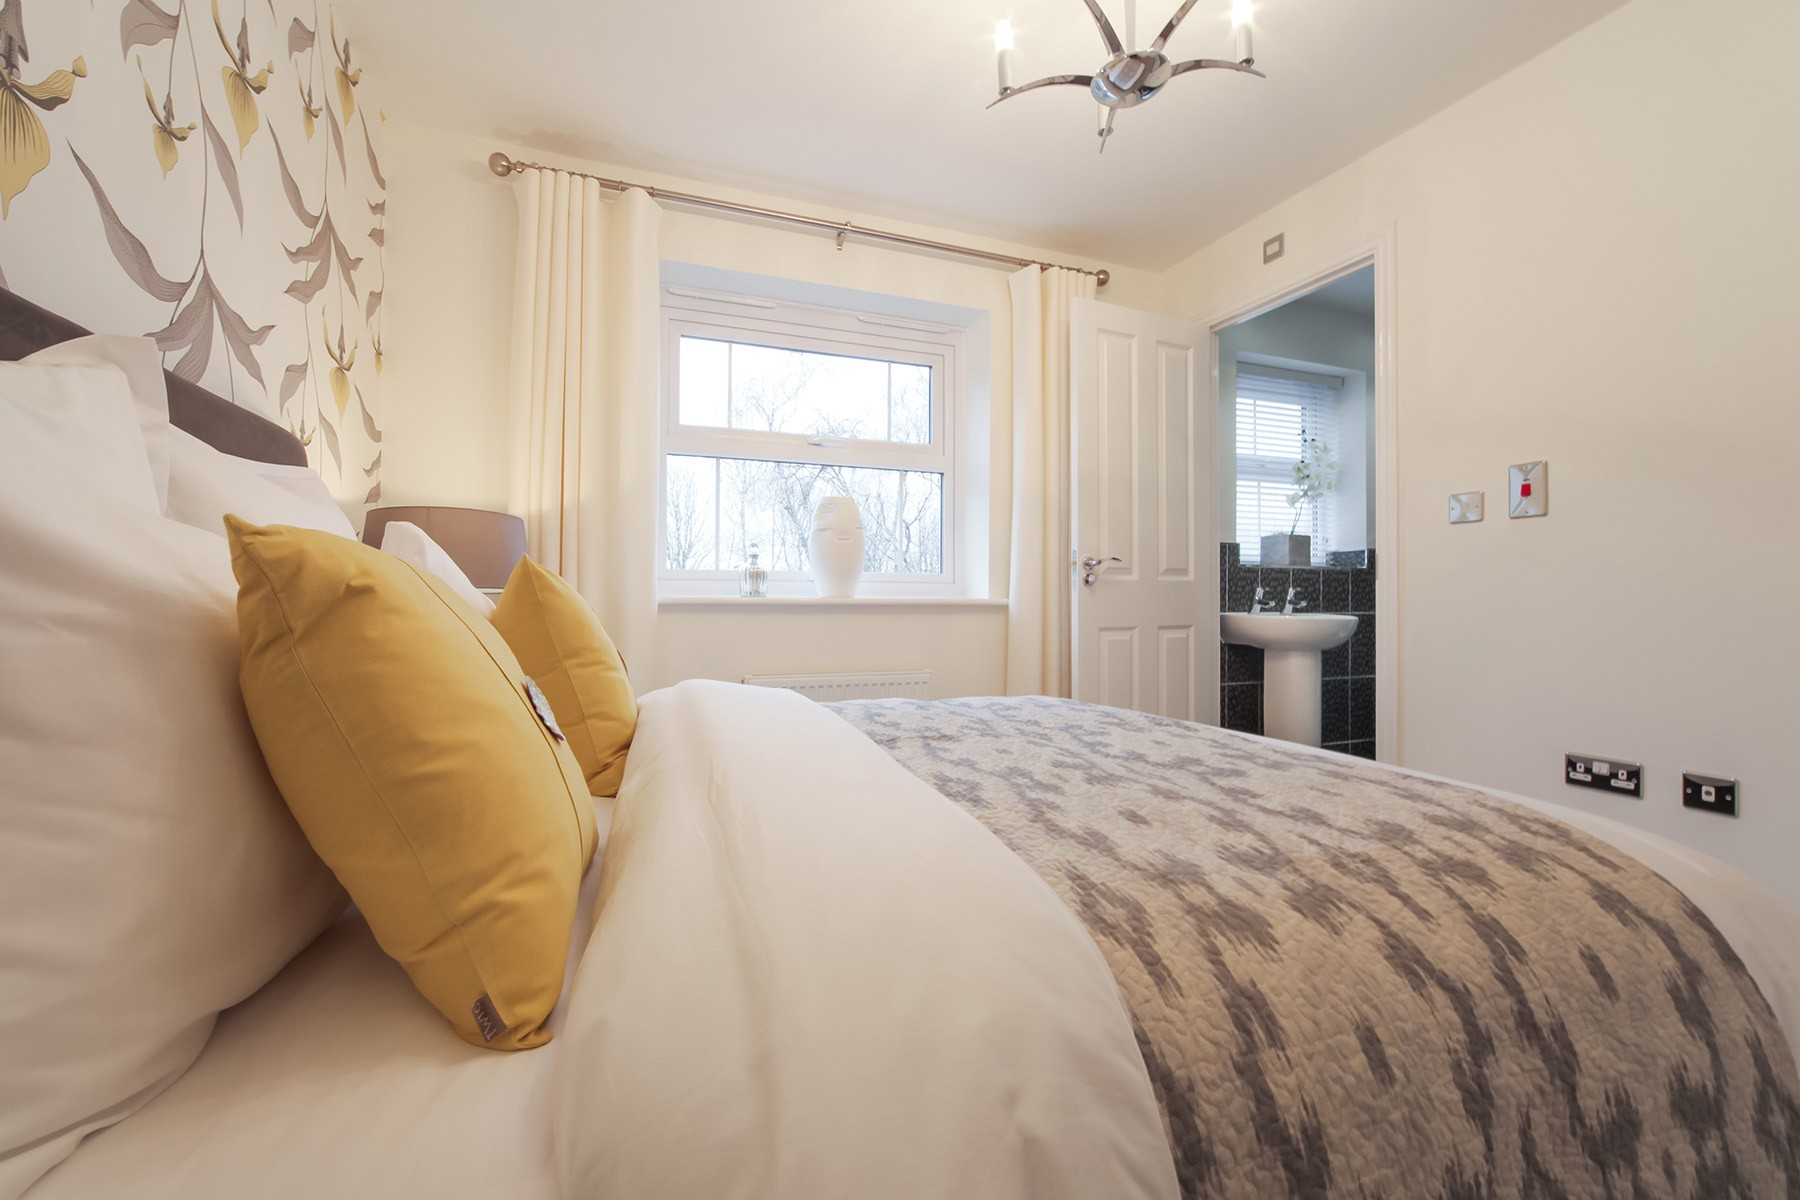 TW Exeter - Plumb Park - Littlesea example bedroom 2